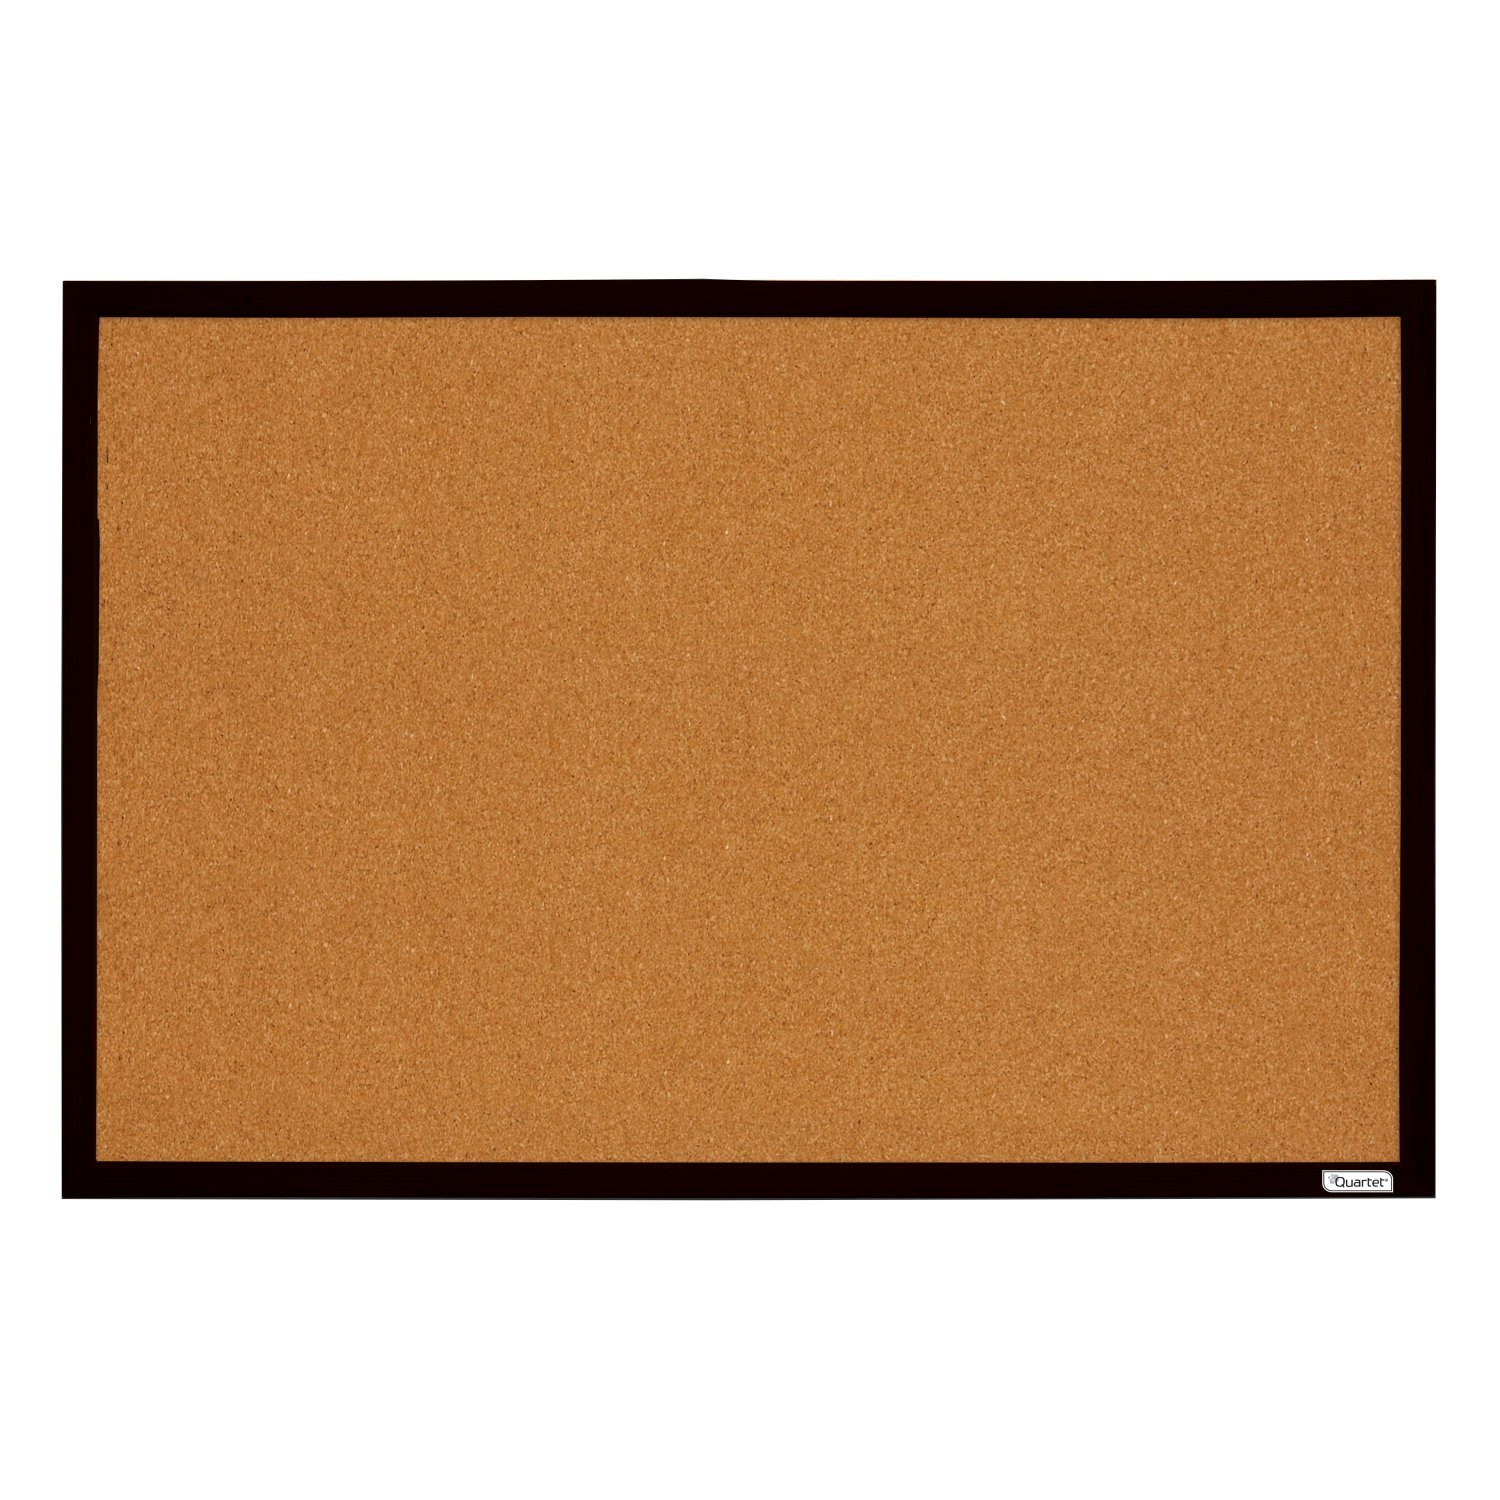 quartet bulletin board cork board 2u0027 x 3u0027 black frame